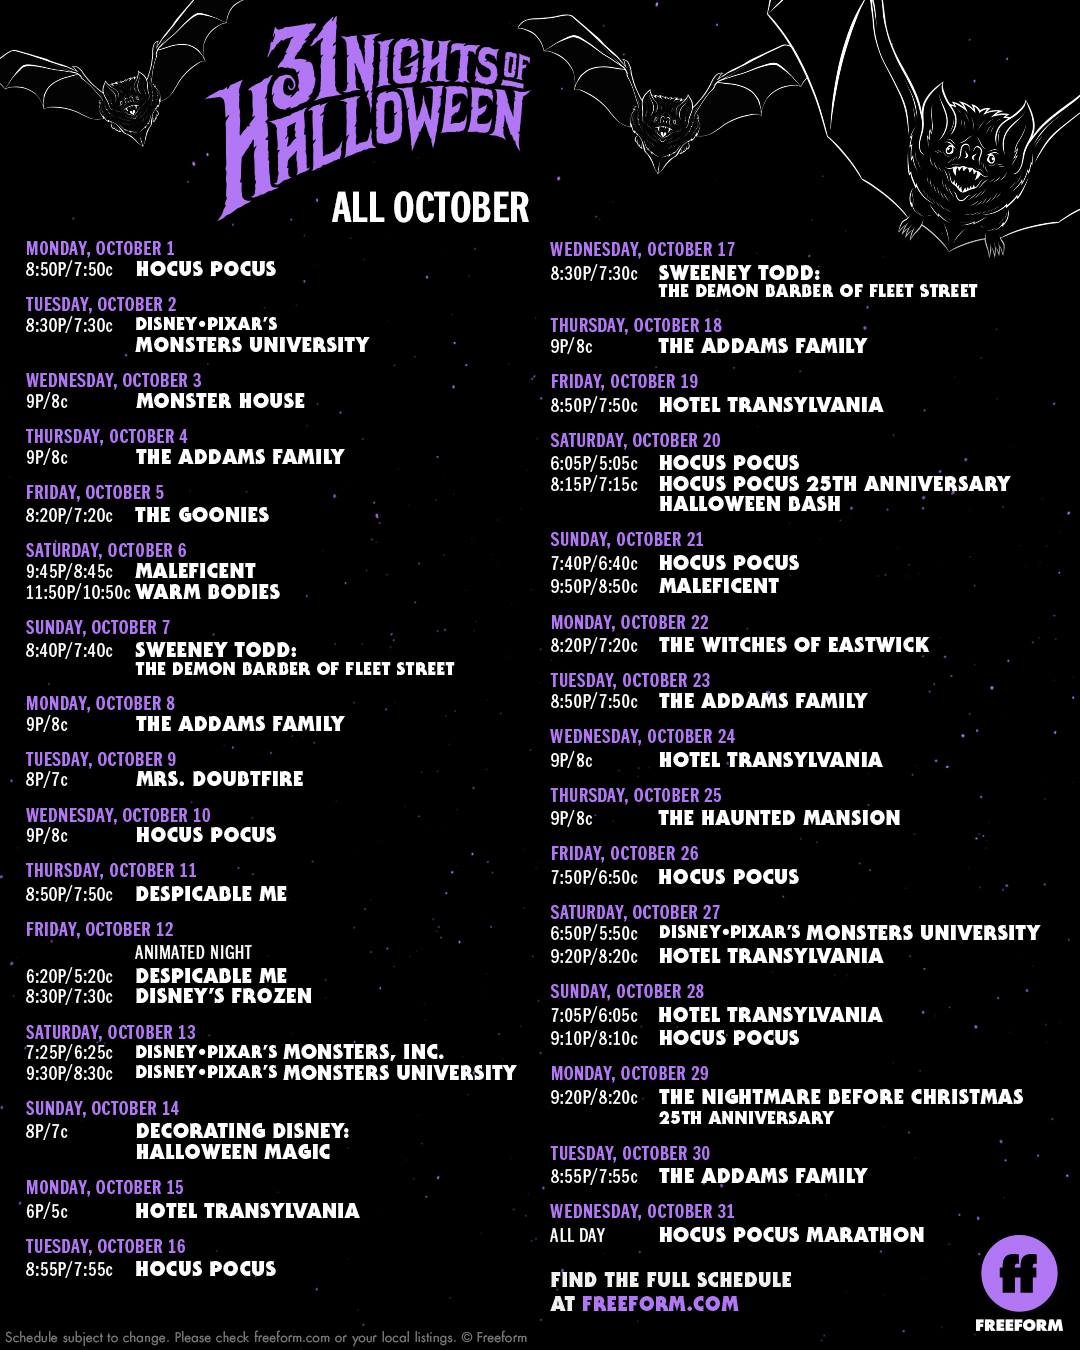 the official 31 nights of halloween 2018 movie schedule